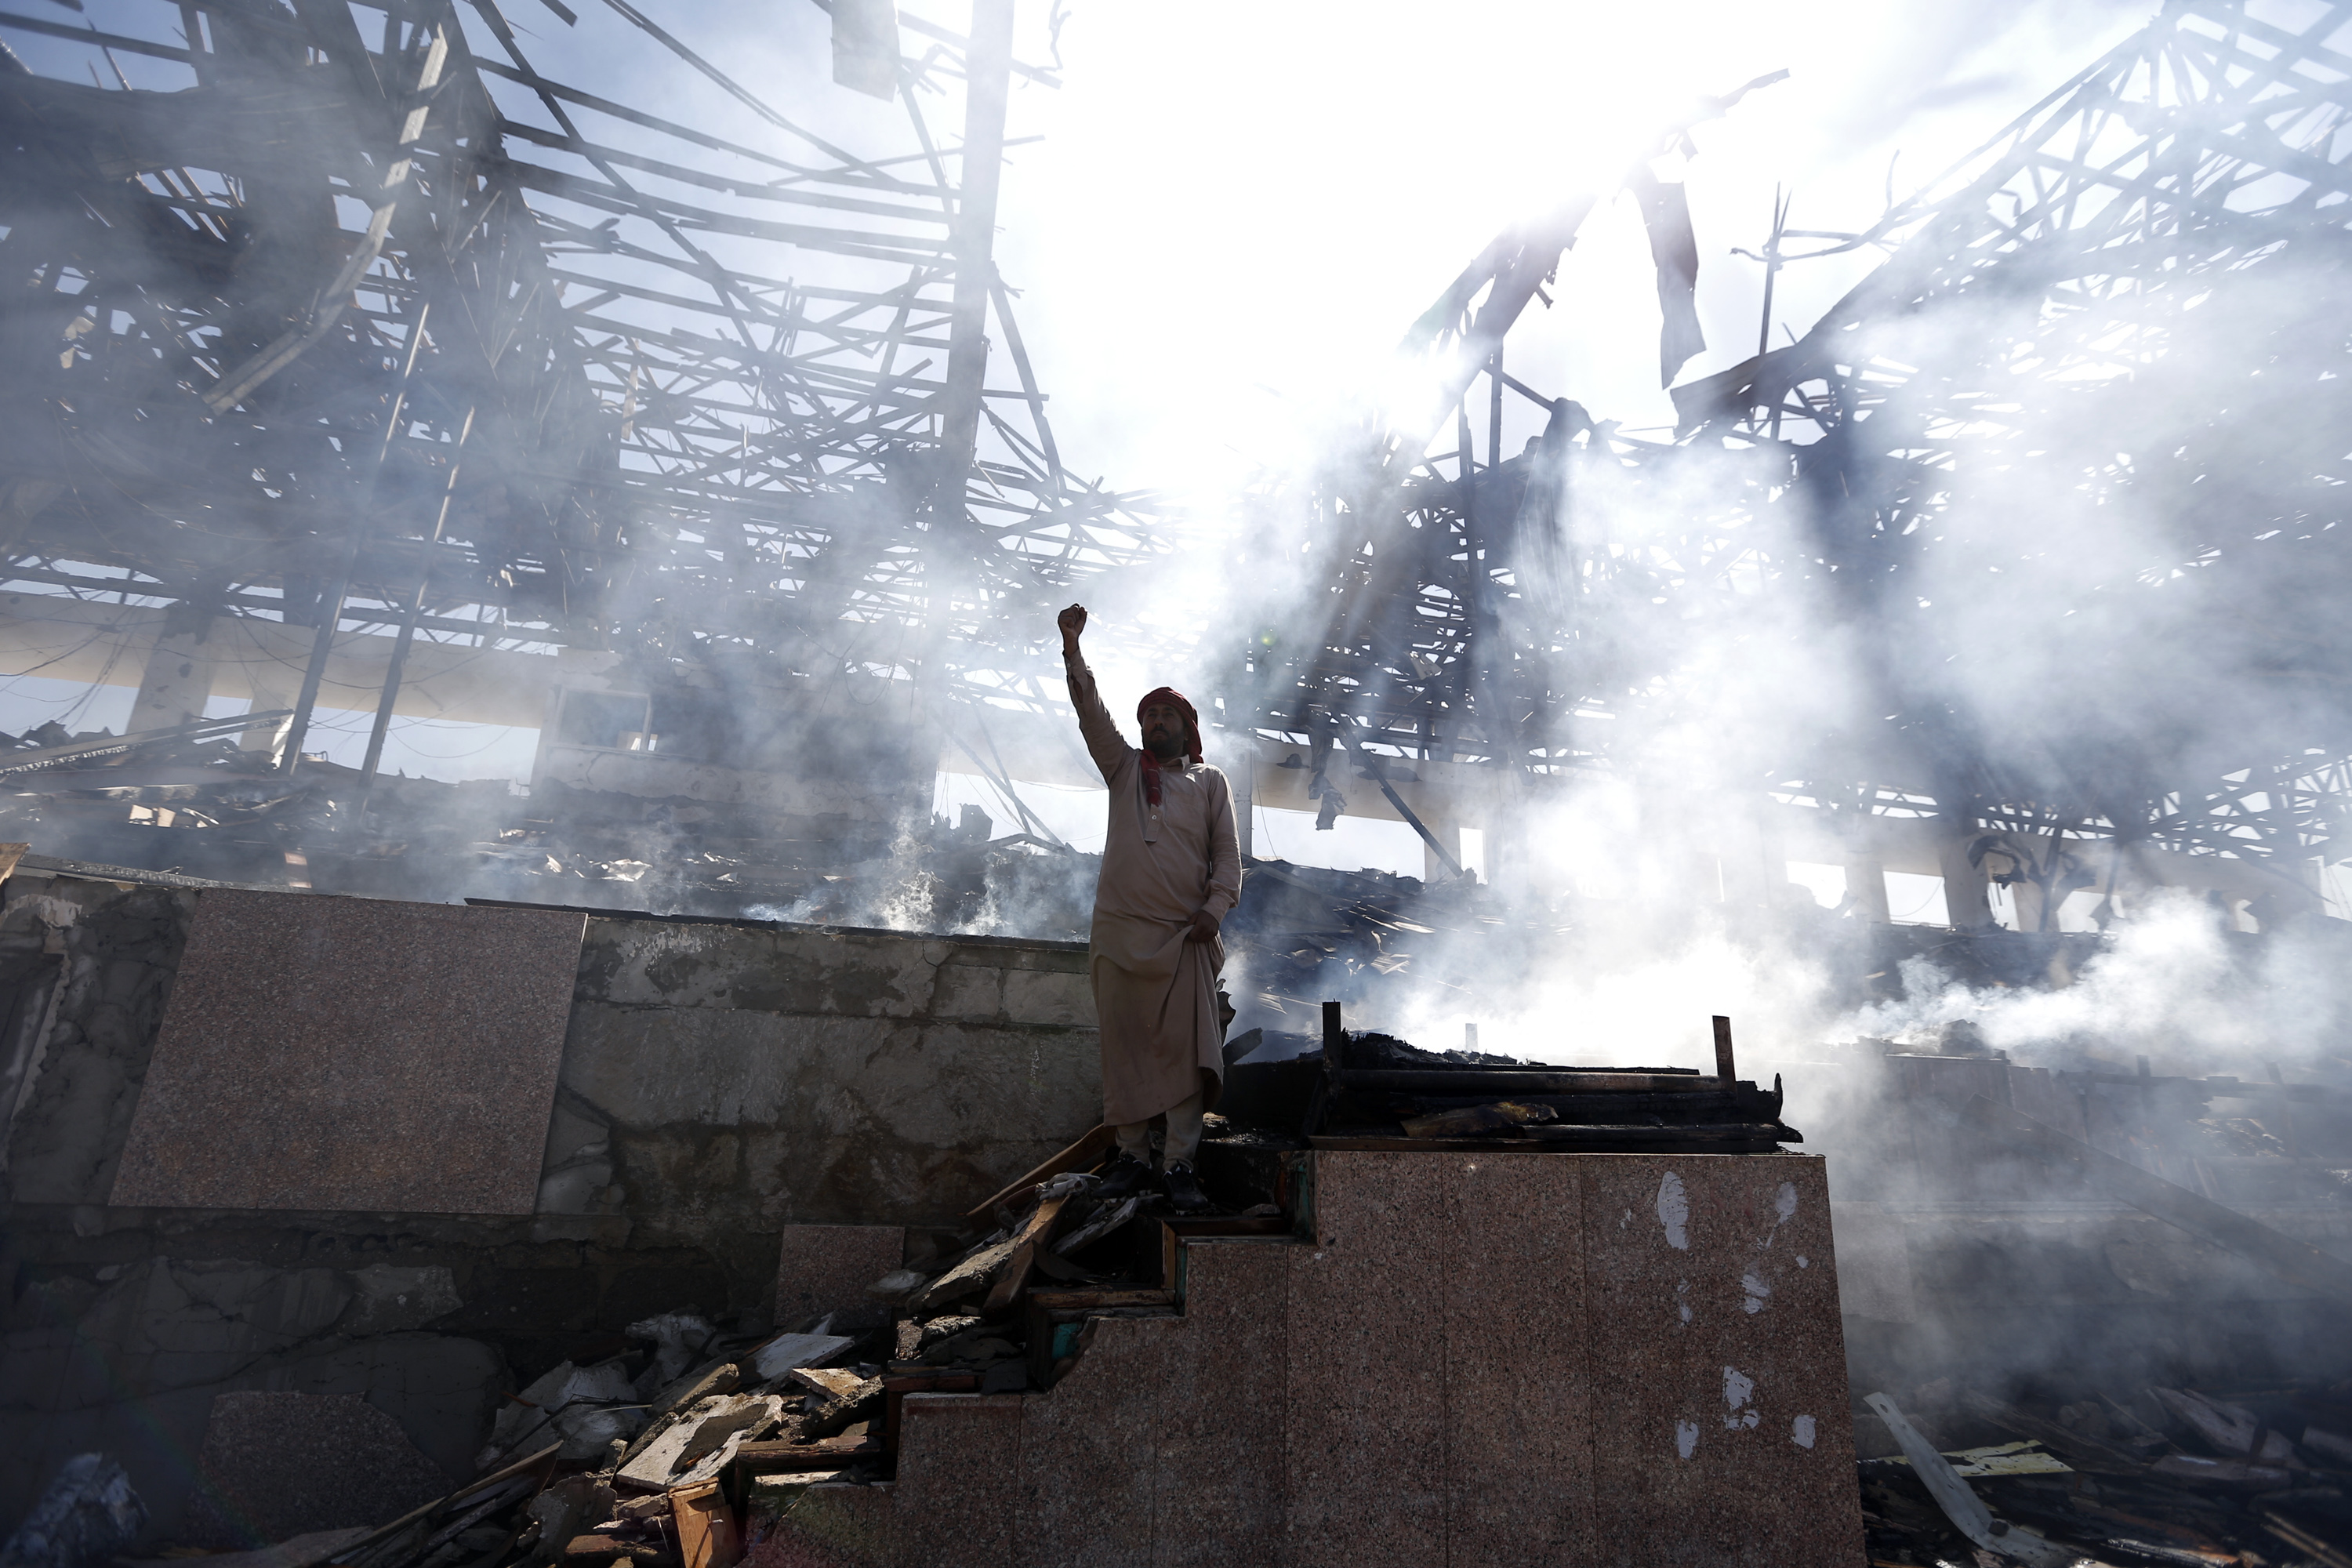 A Yemeni man gestures at the site of an air strike in the capital Sanaa, on November 5, 2017.